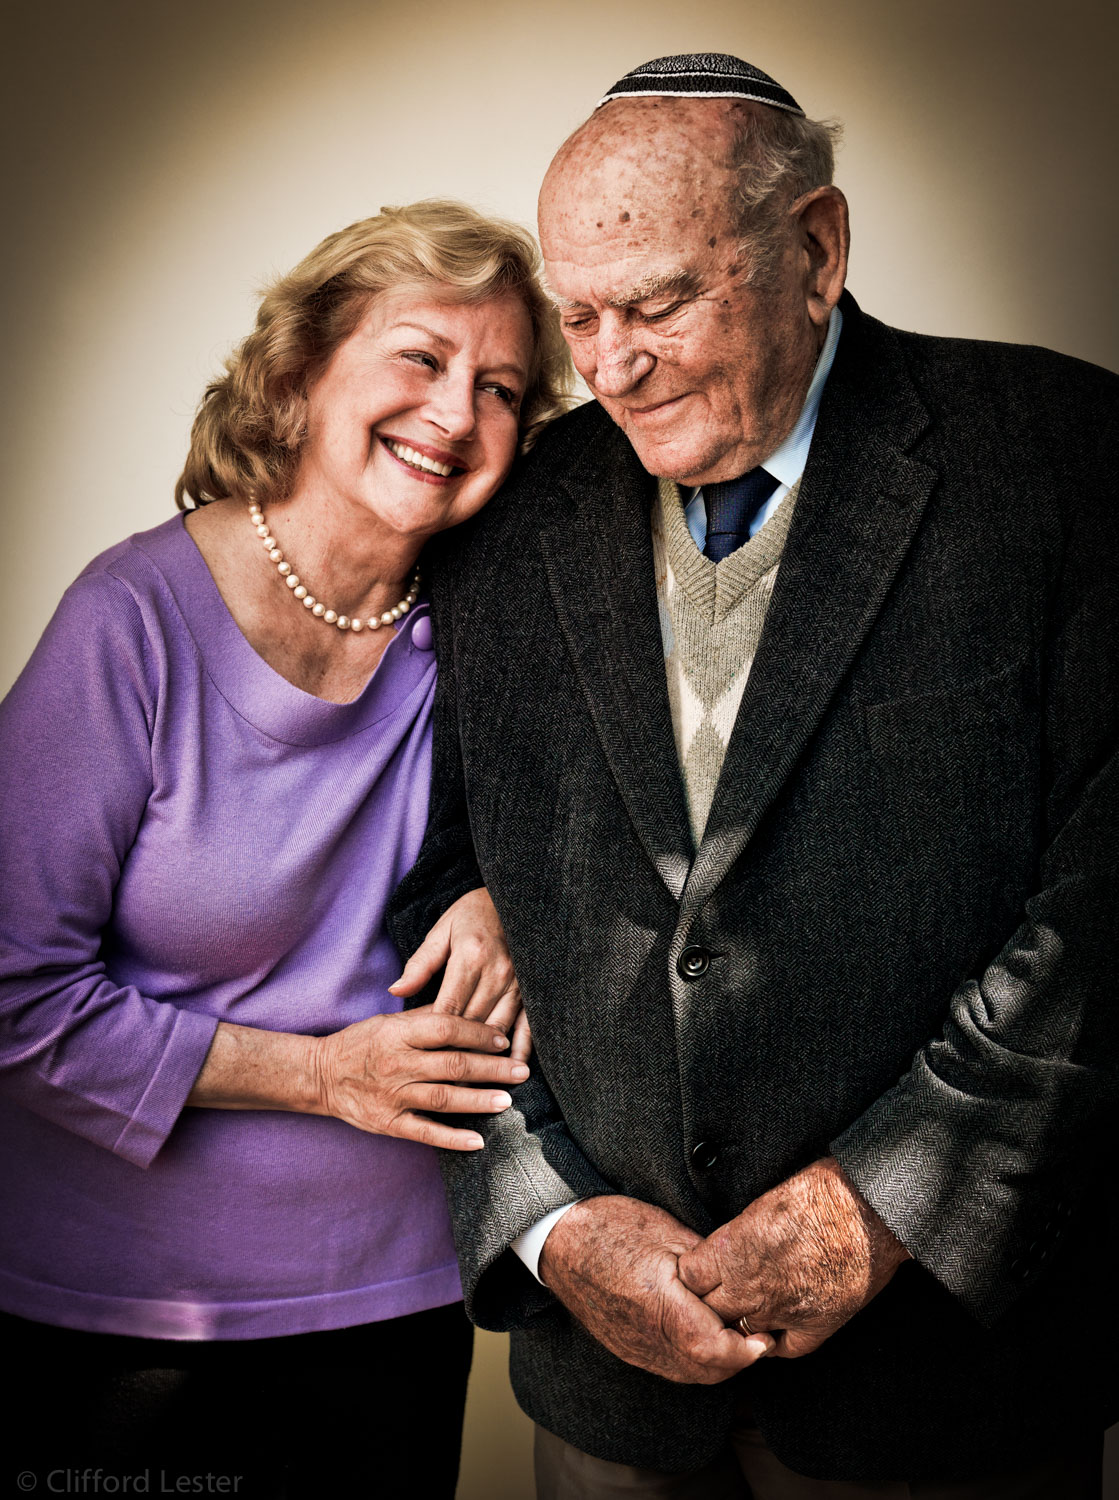 Natalie, photographed with her father, Leon. Photographed for the Rodgers Center of Holocaust Education, Chapman University.